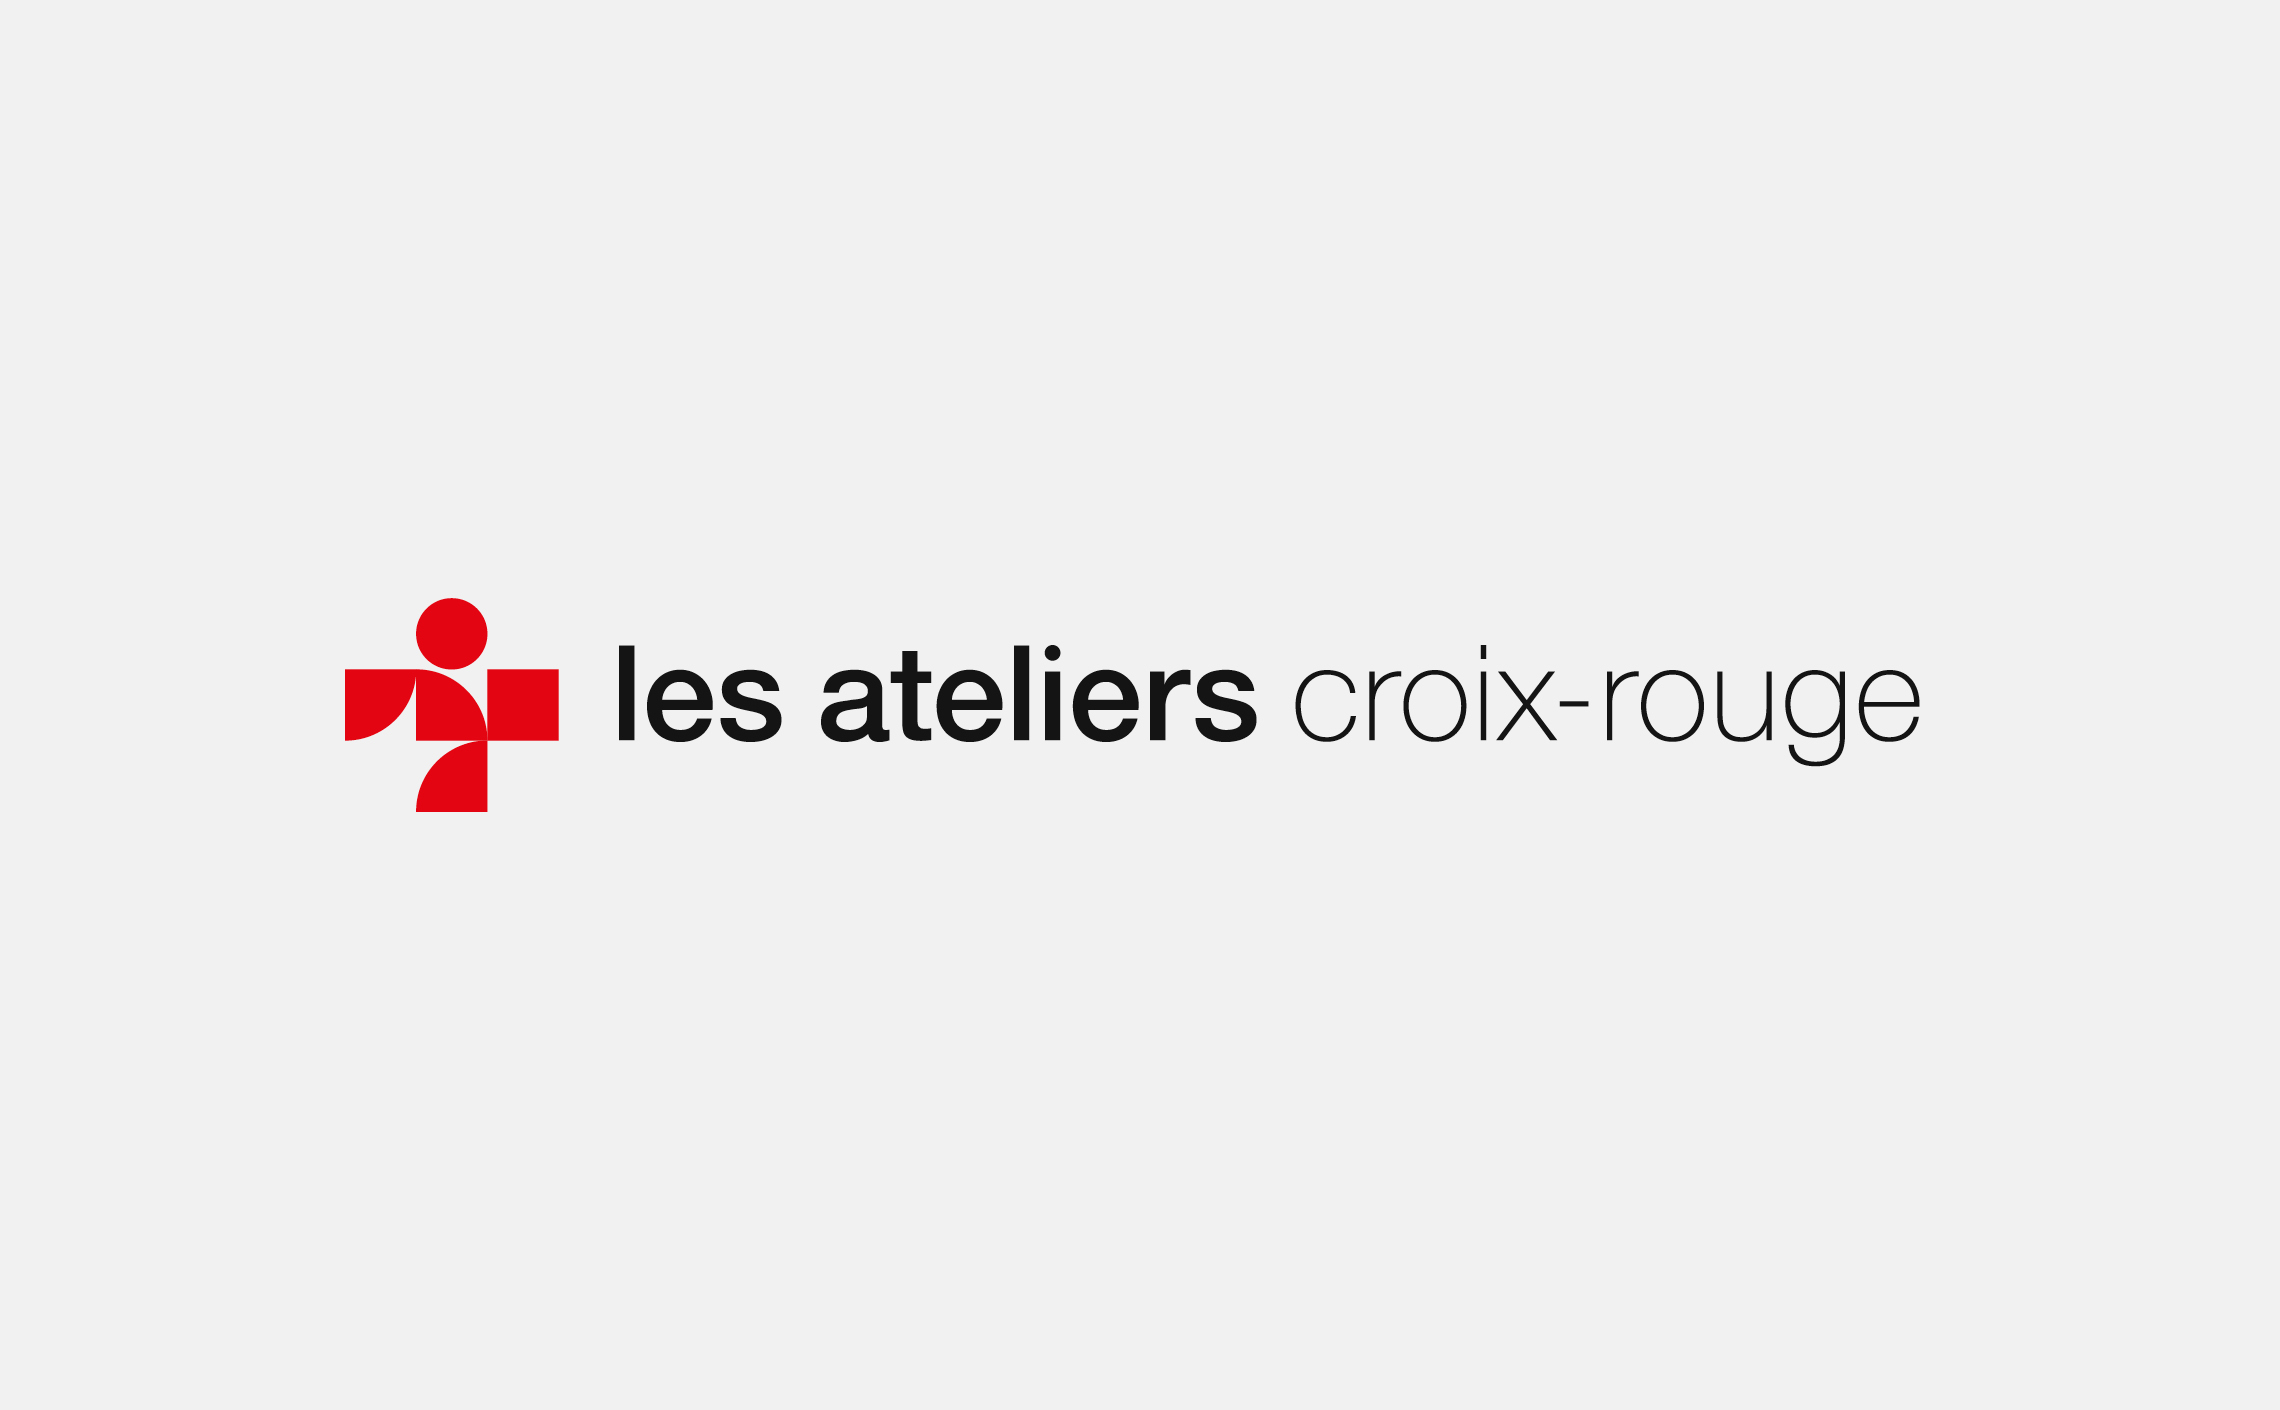 branding croix-rouge insertion ONG ESS